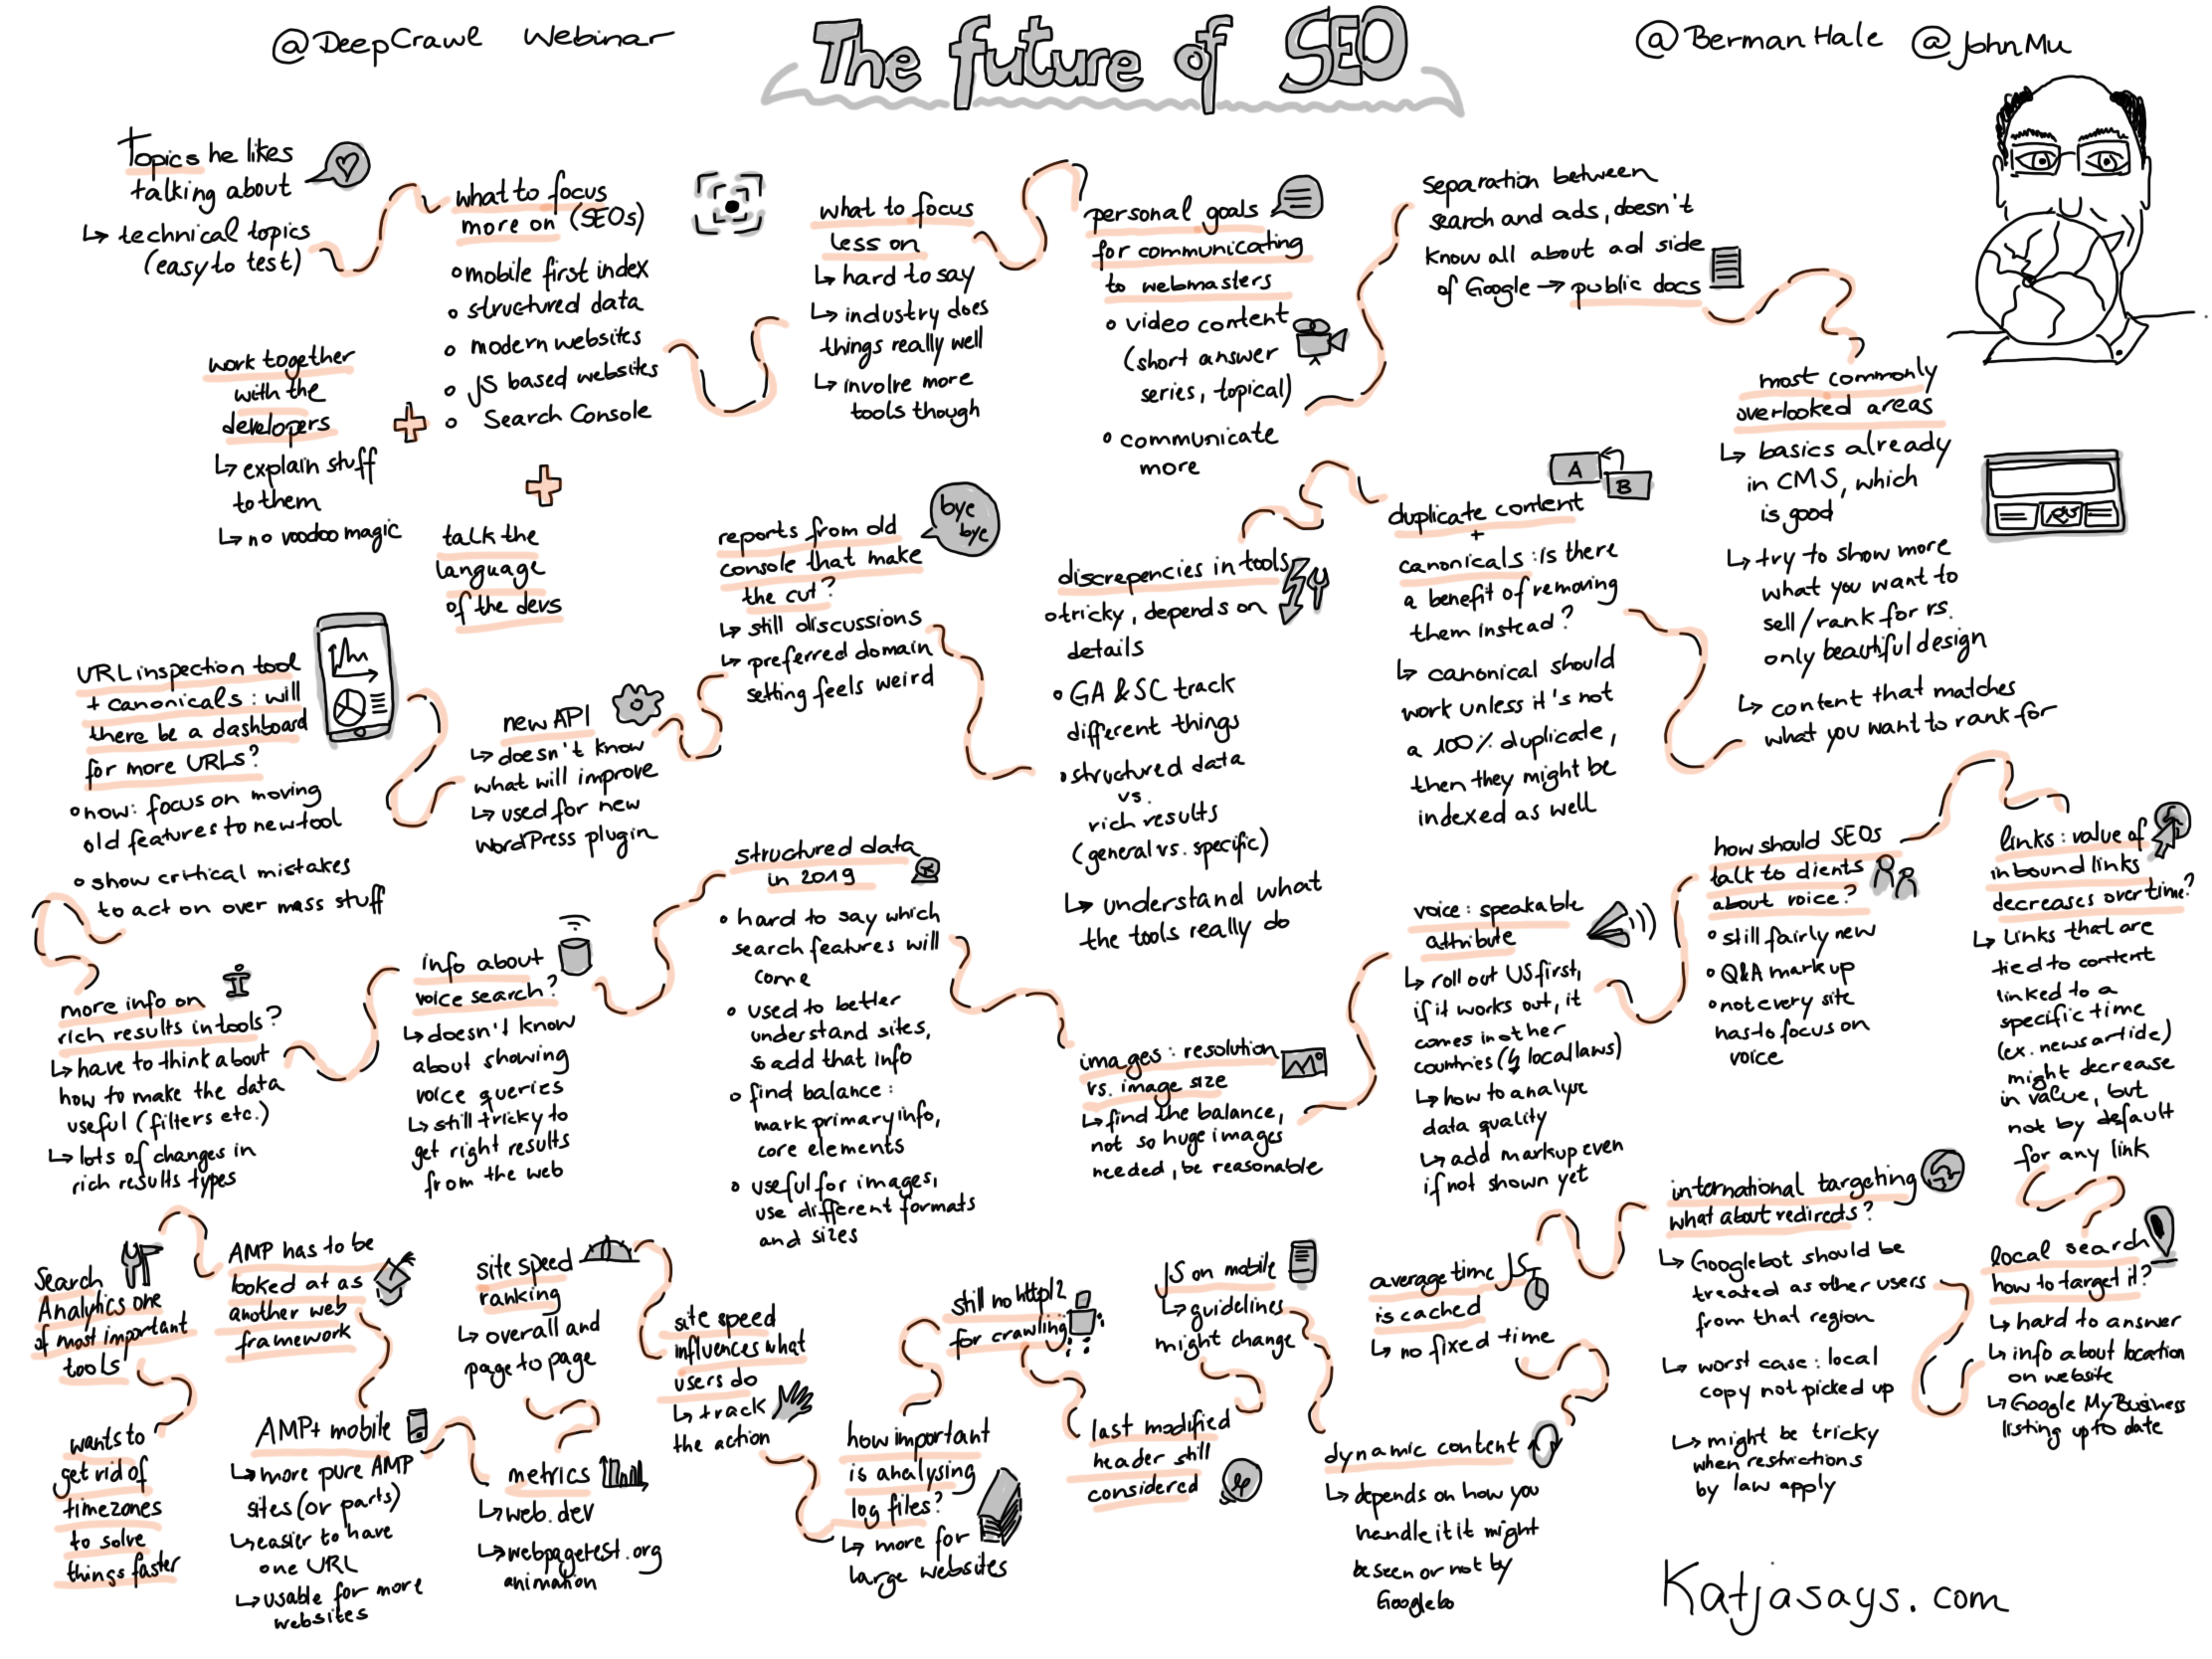 The future of SEO (webinar with John Müller) Sketchnote